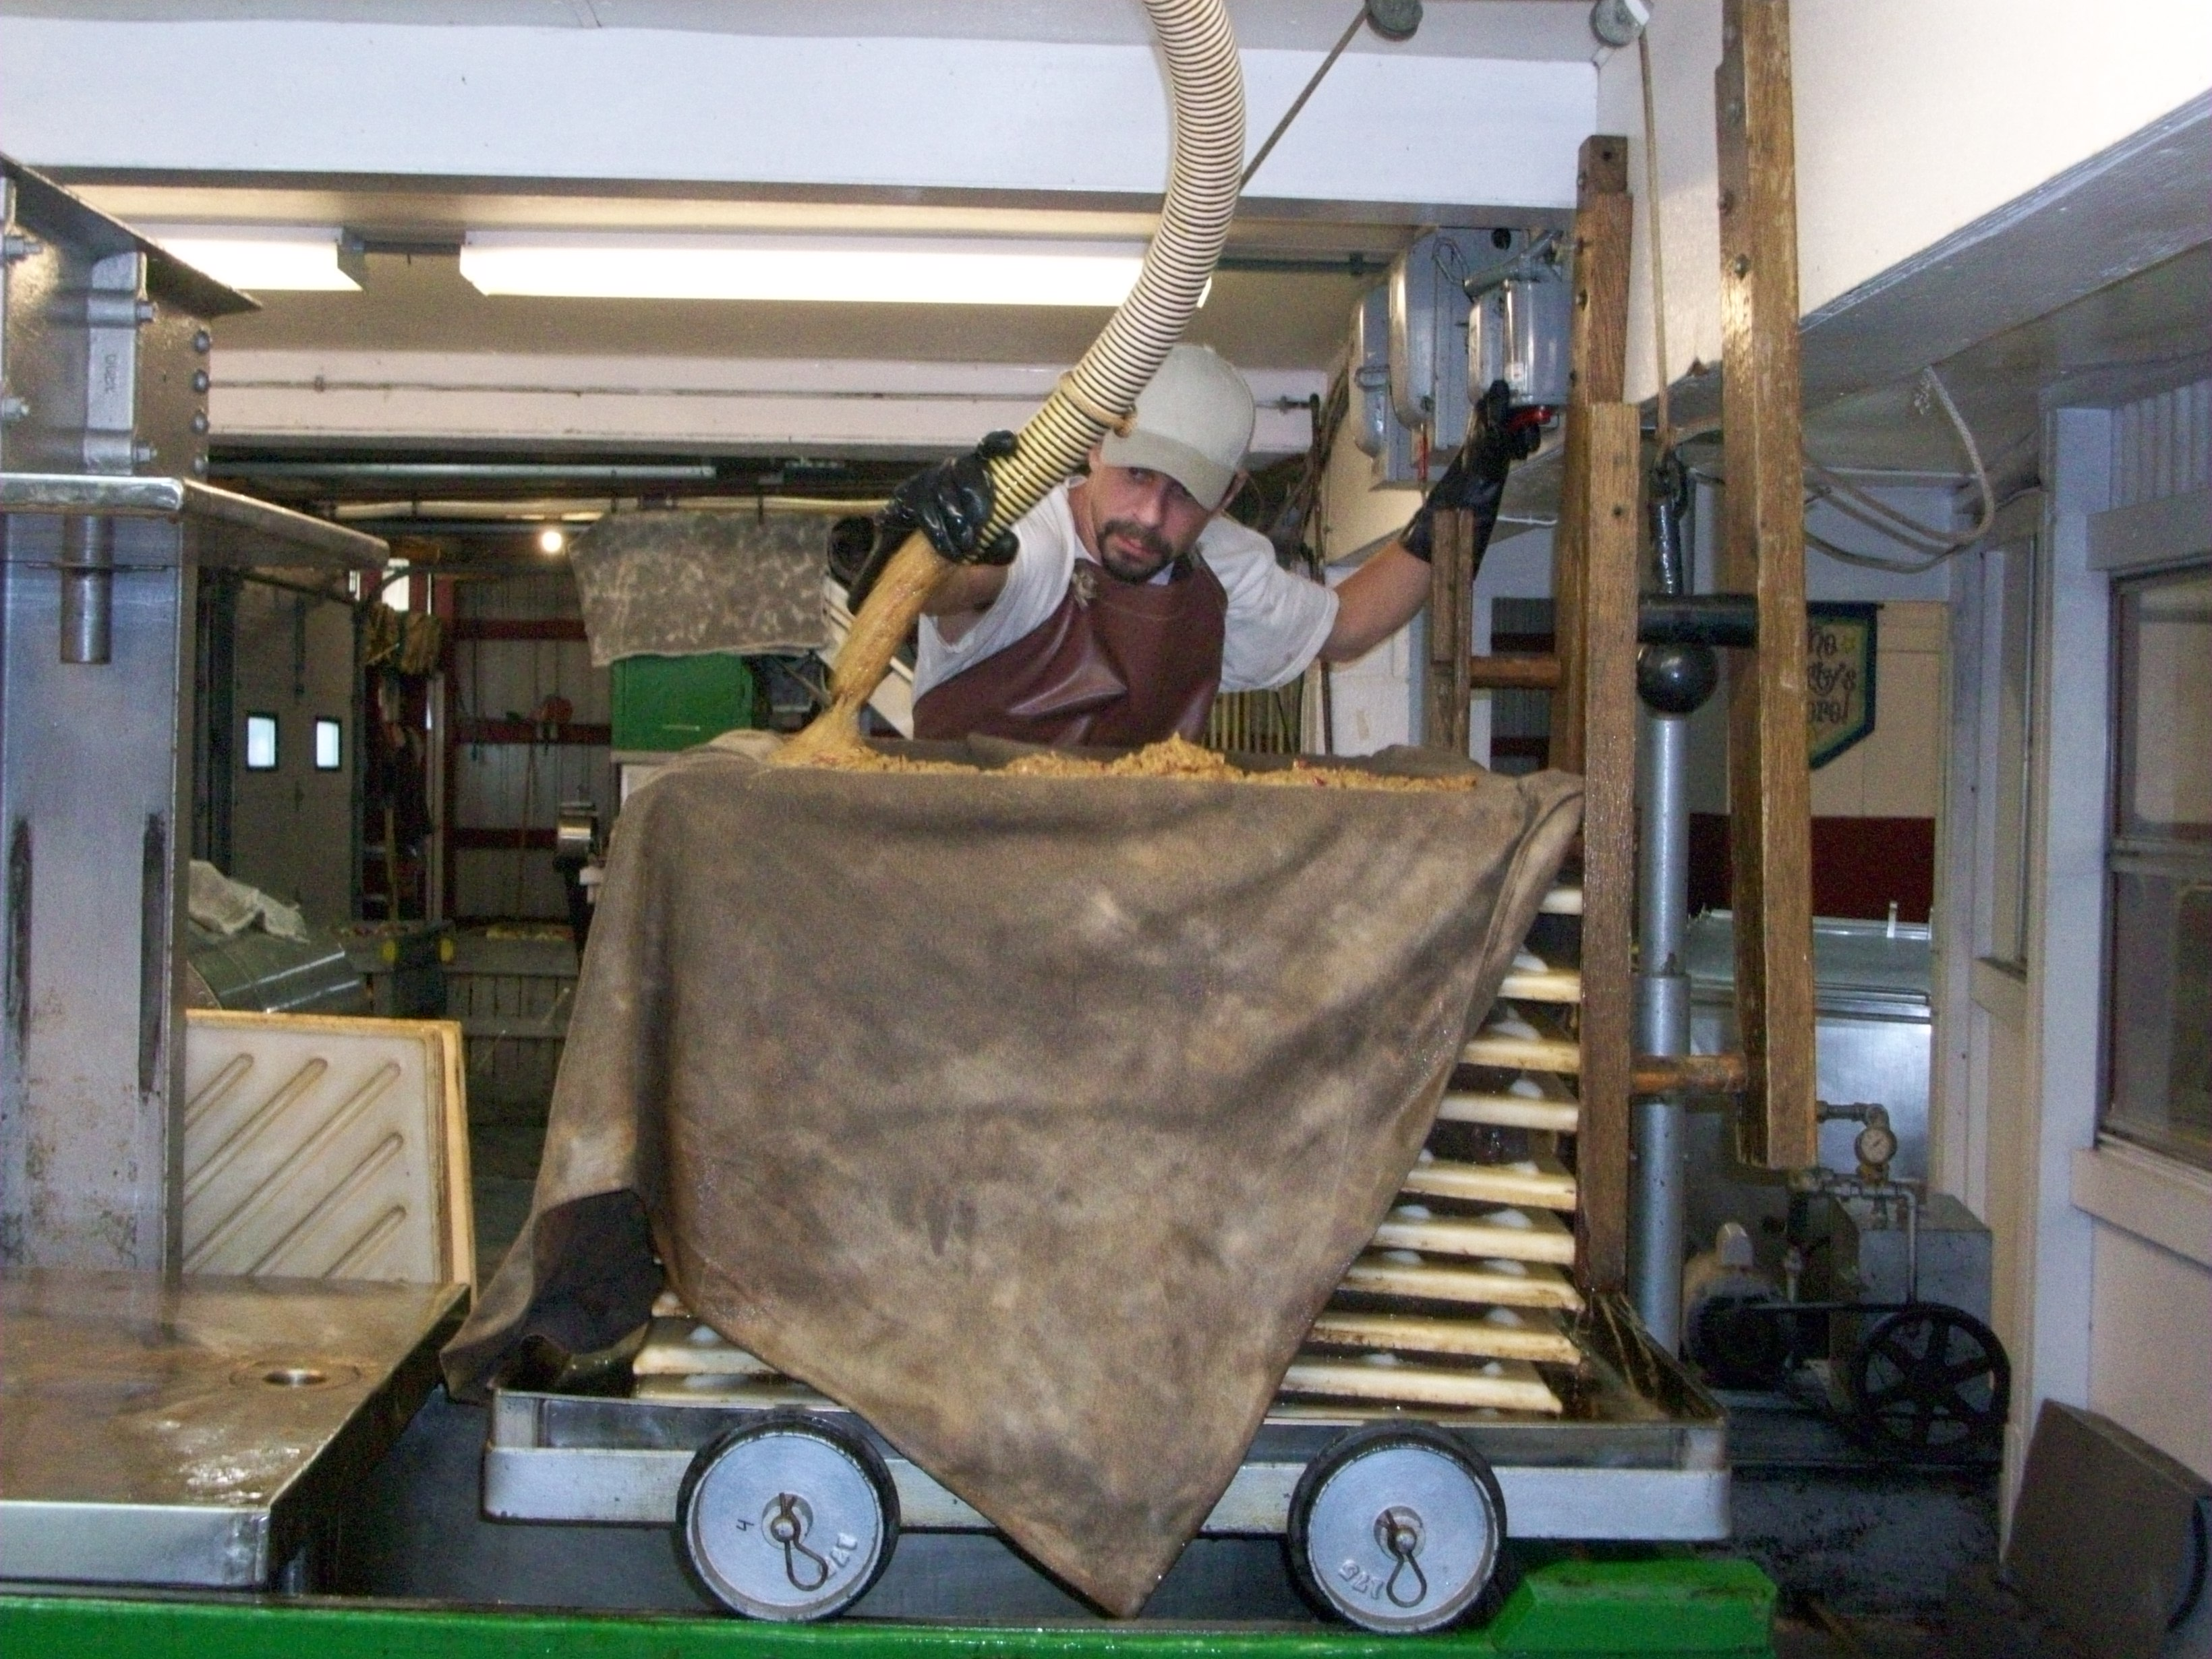 Watch Cider Making in action